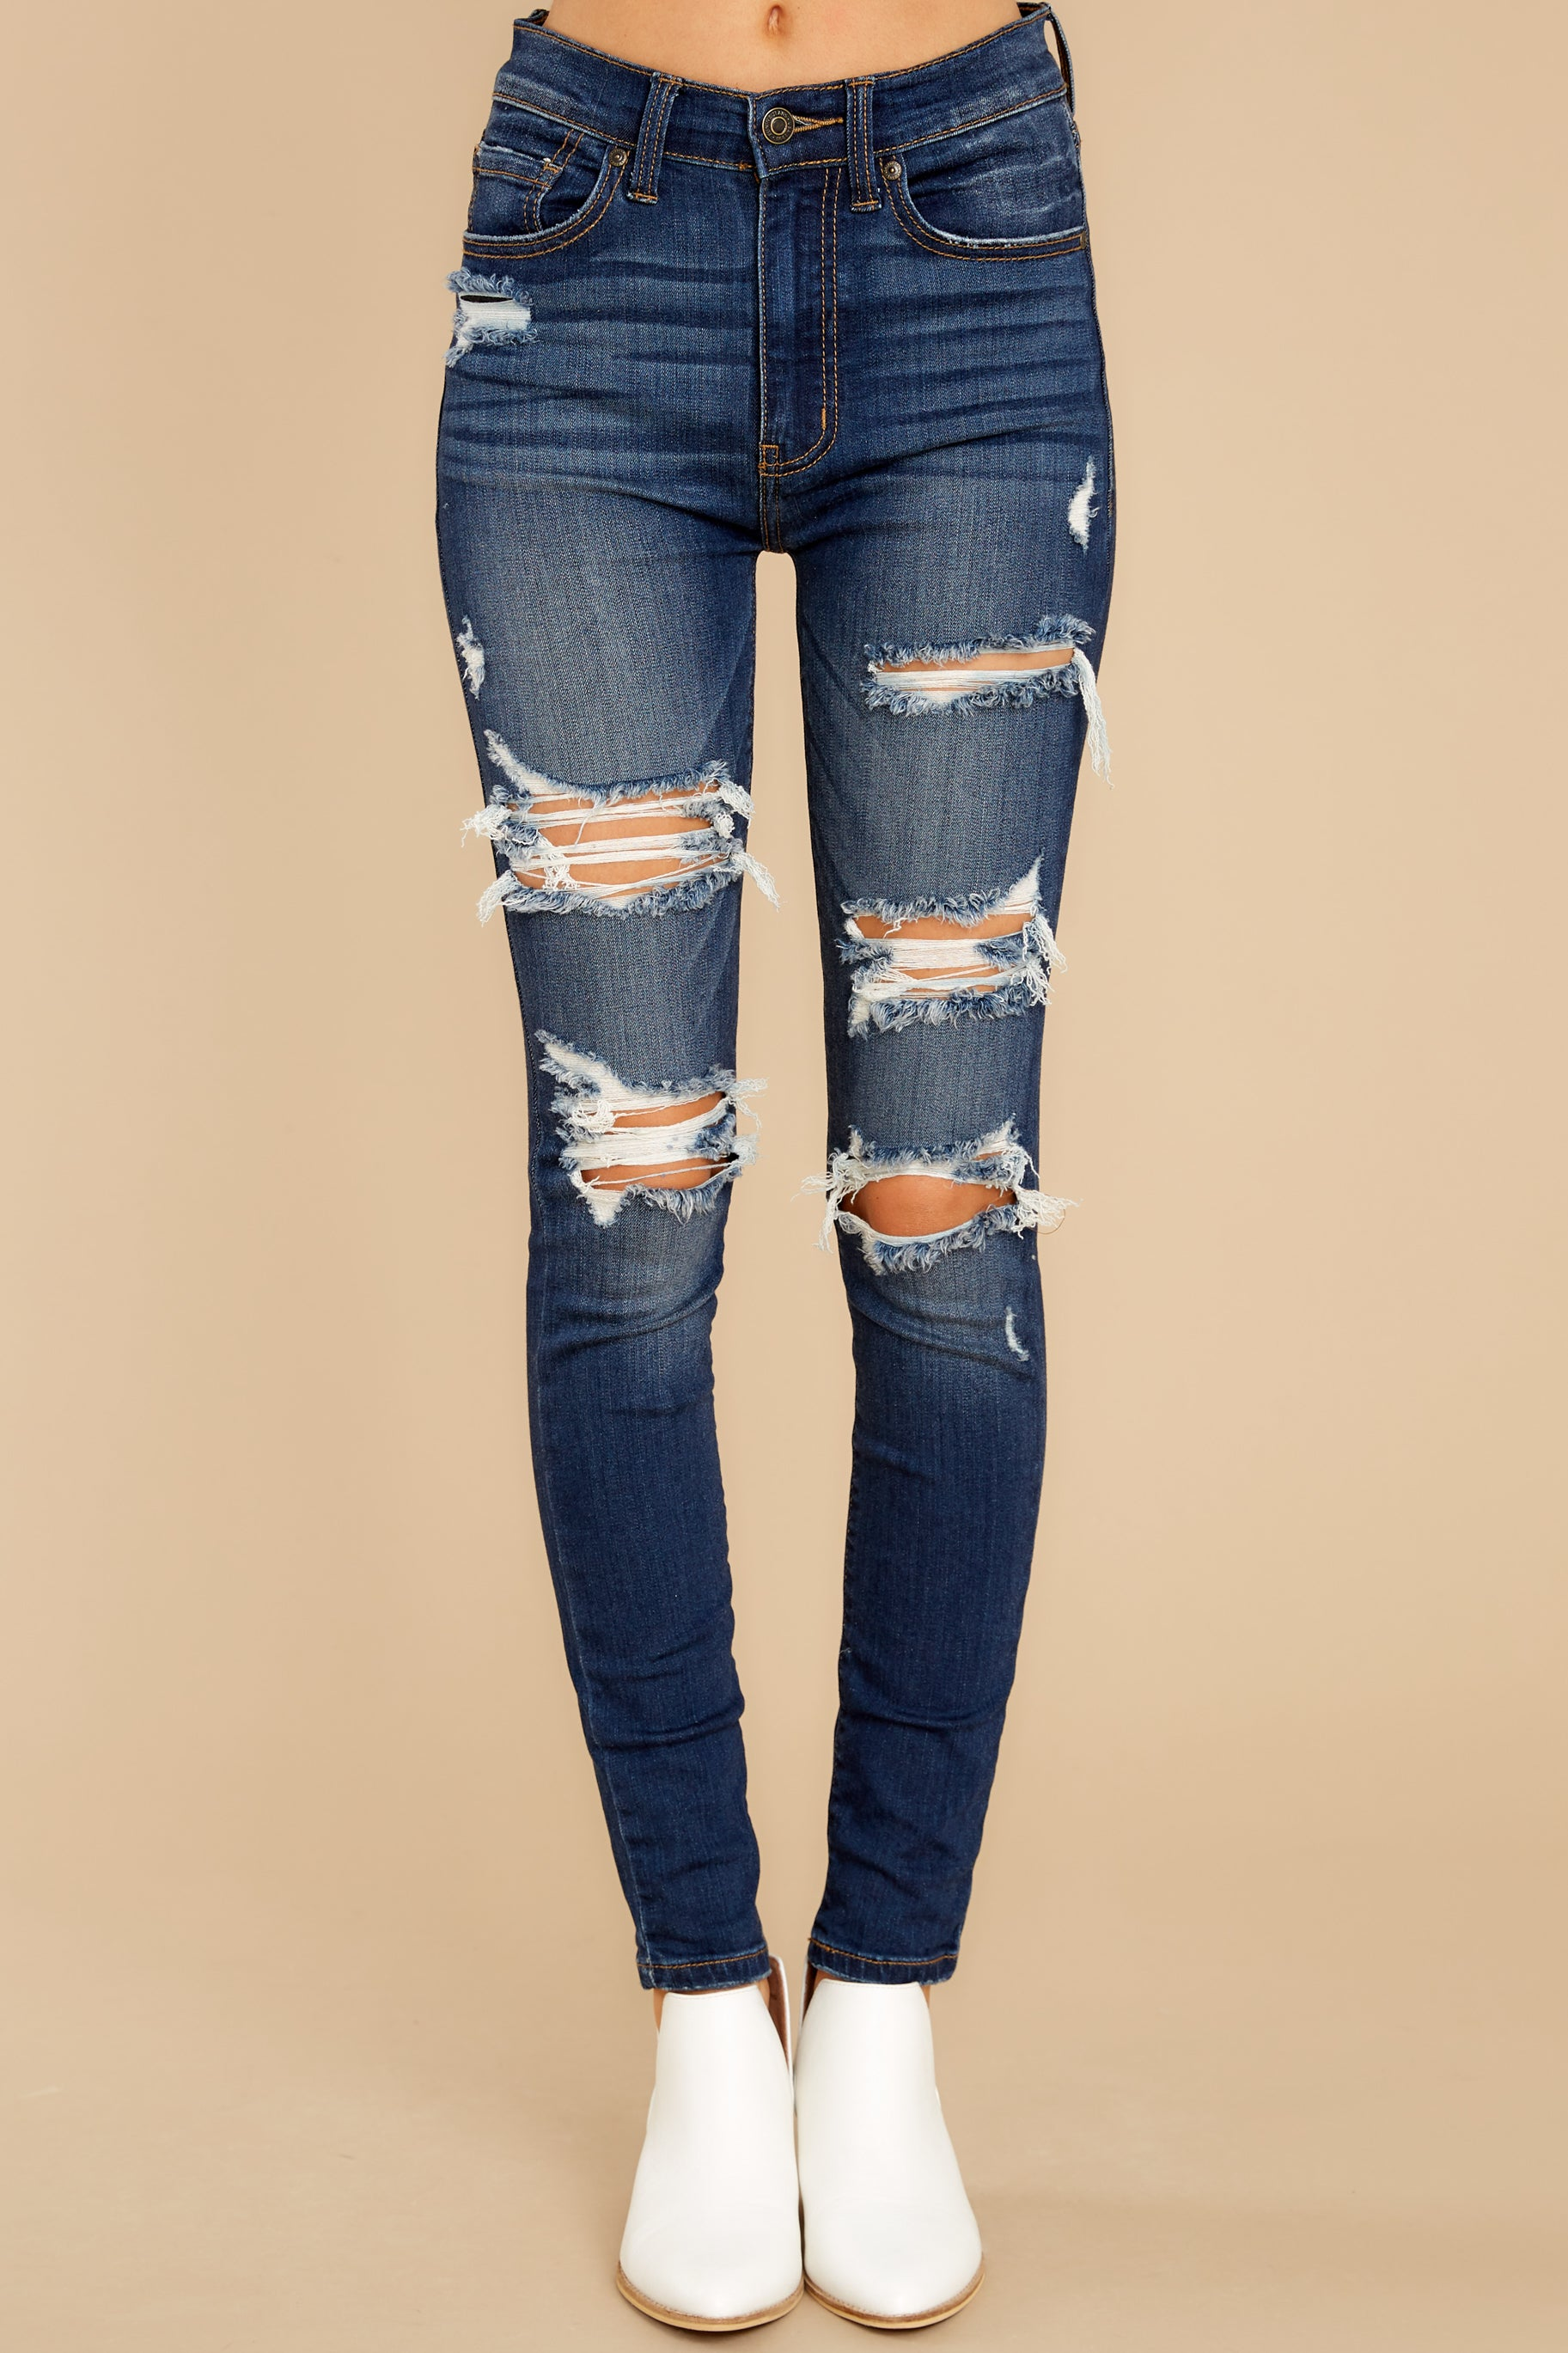 3 Your Every Whim Dark Wash Distressed Skinny Jeans at reddress.com